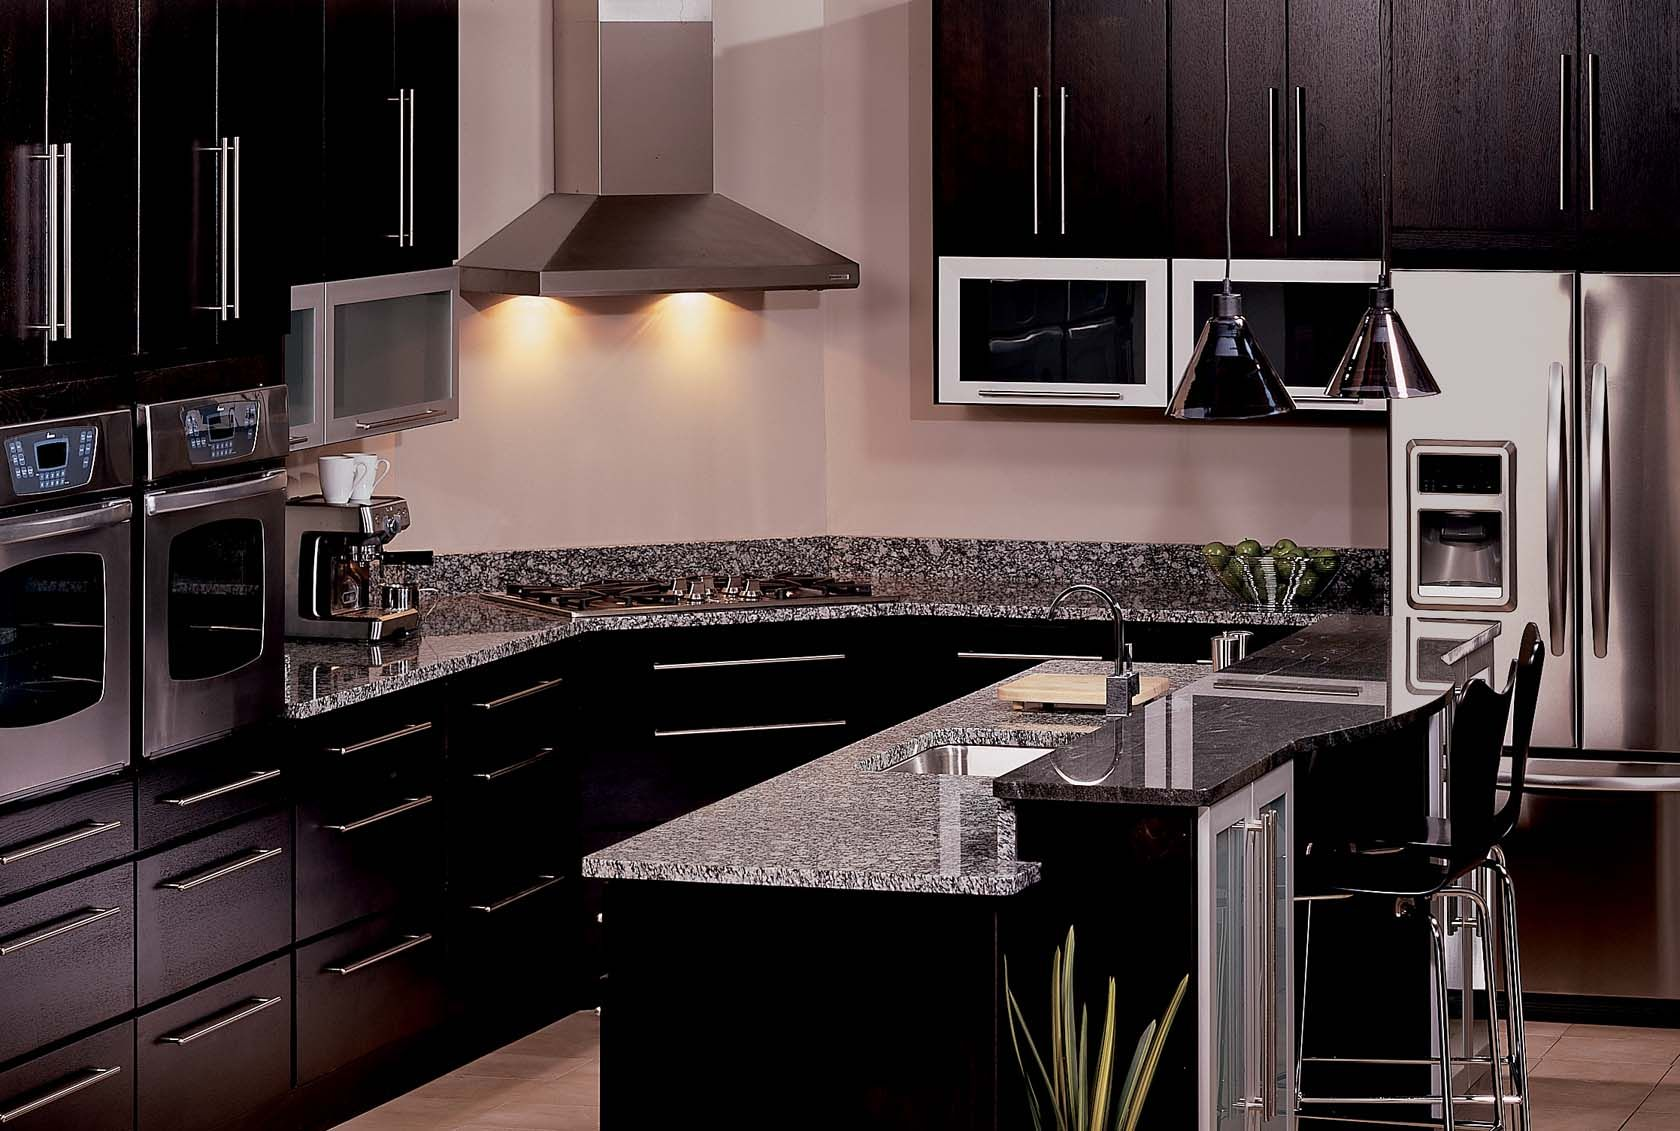 Solid Surface Countertops Utah The Manhattan Style Kabinart Kitchen Comes Complete With A